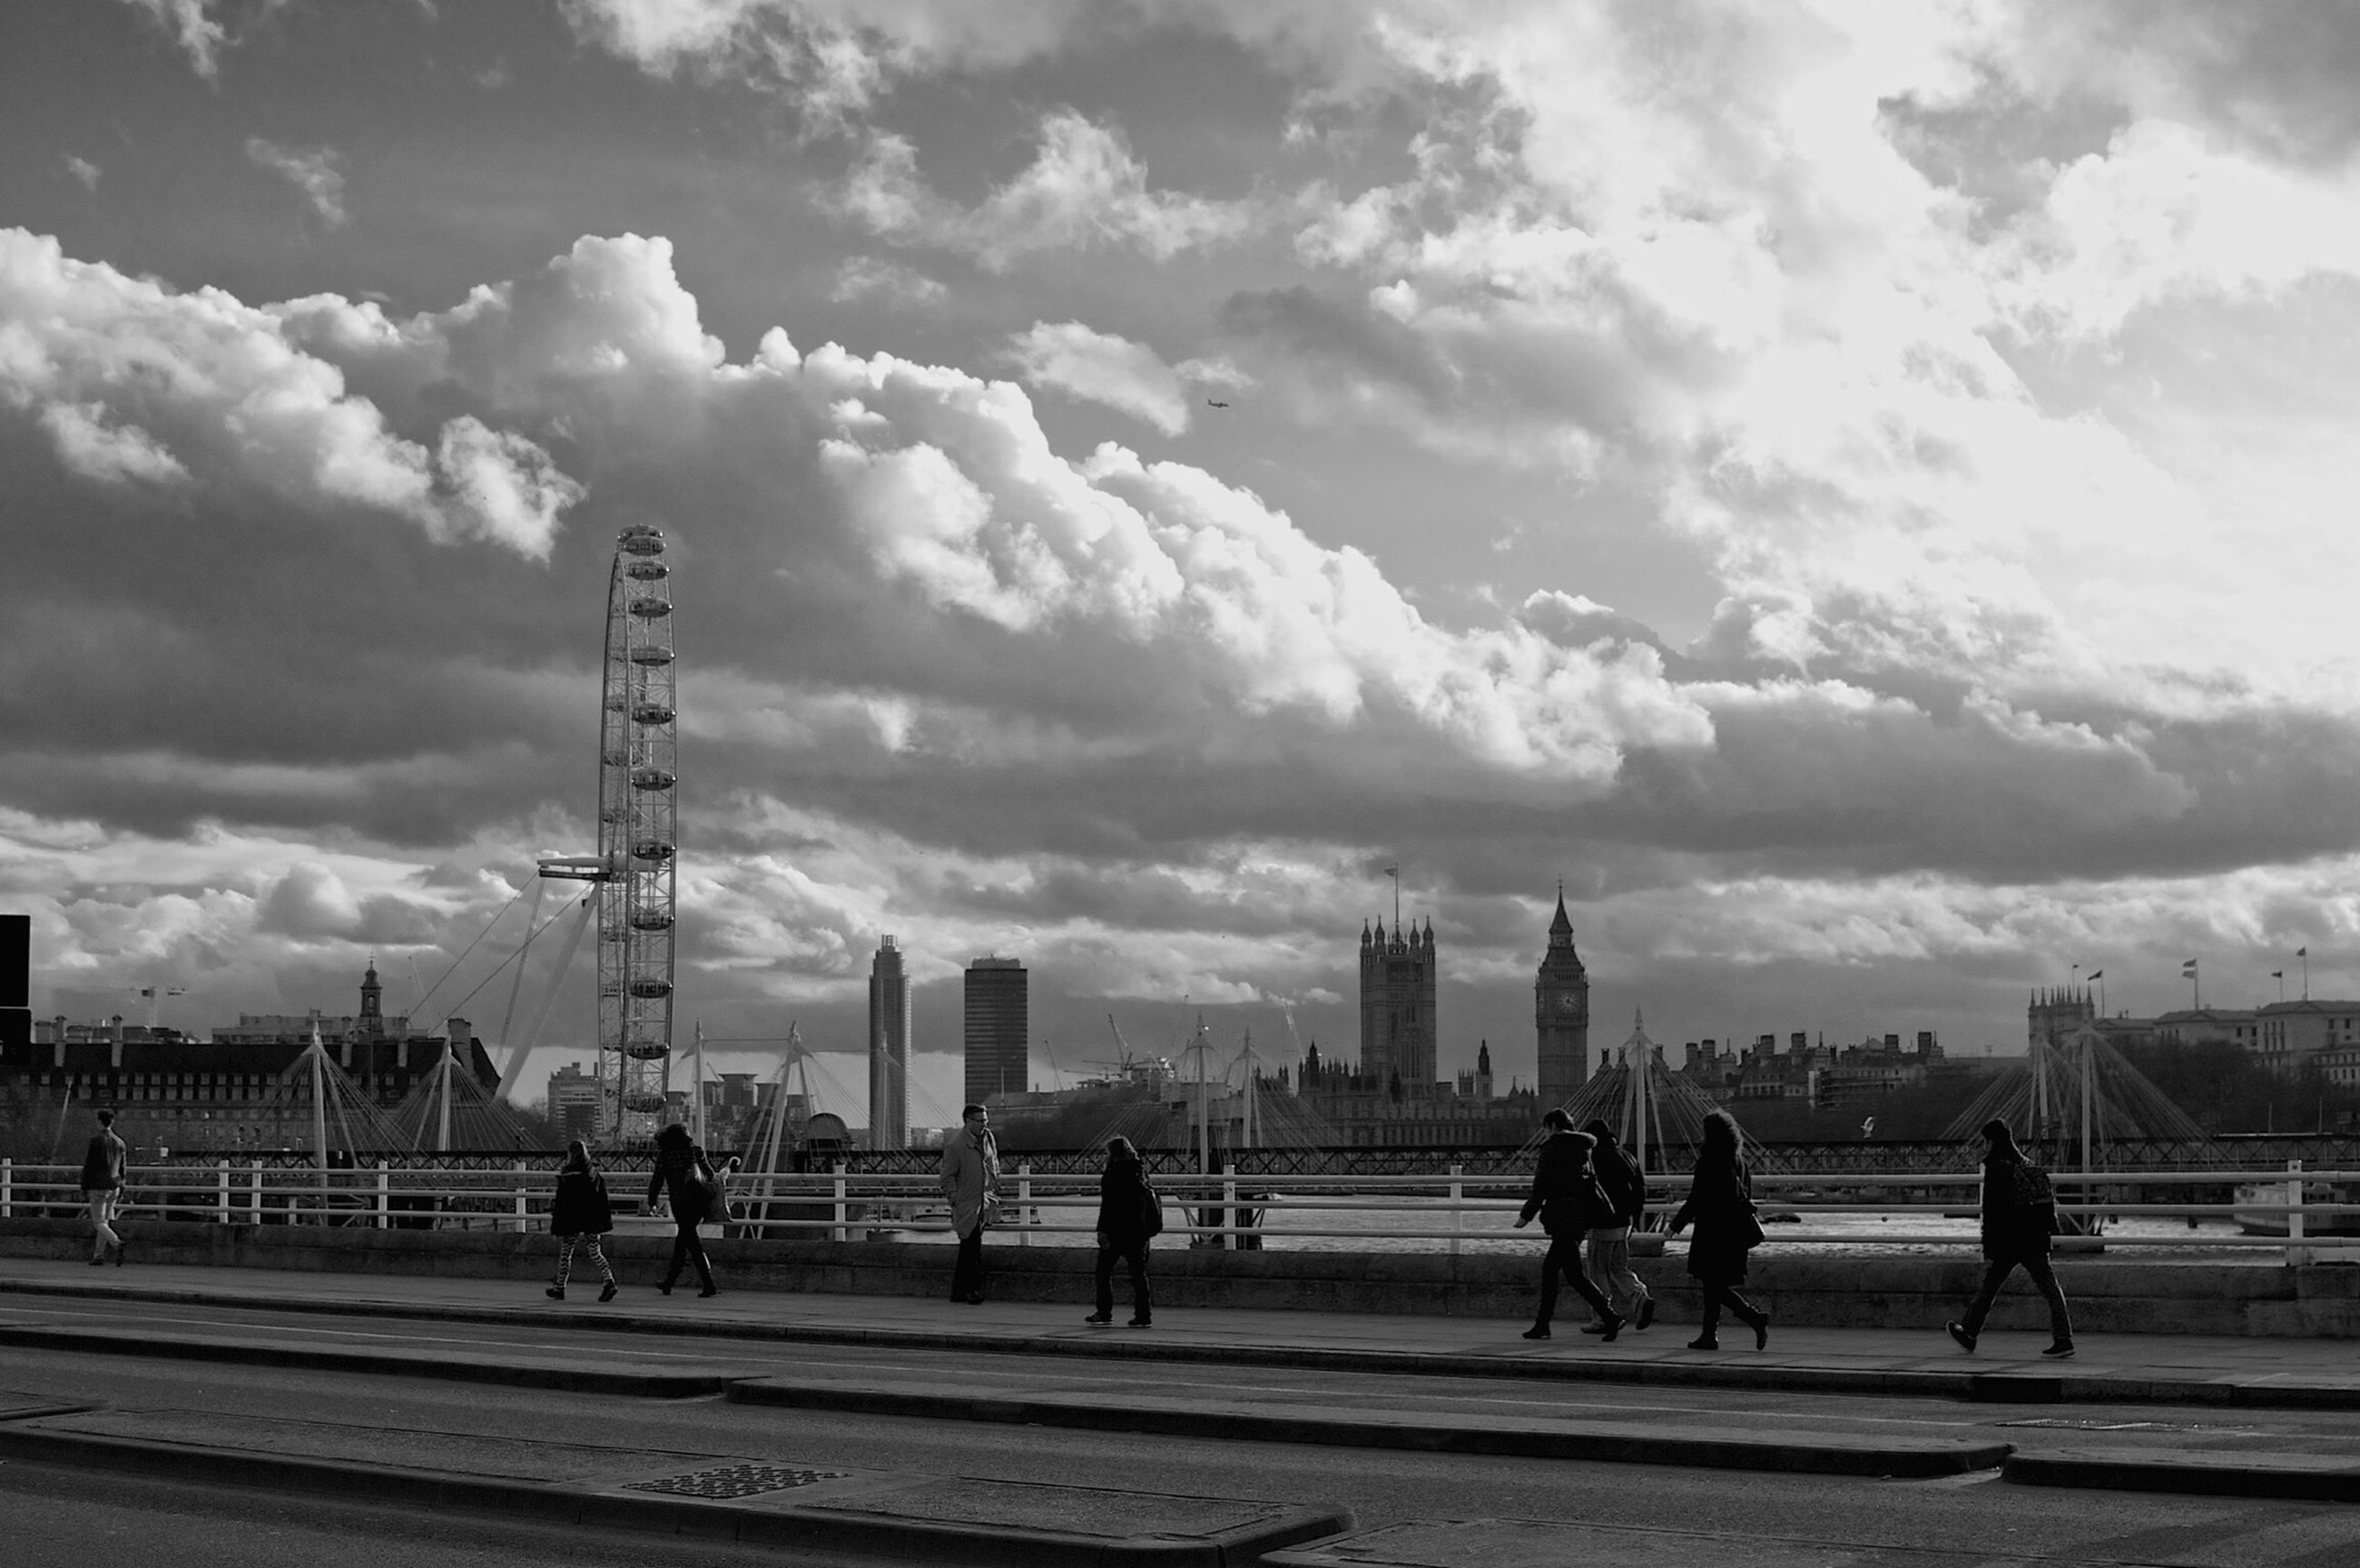 sky, cloud - sky, built structure, architecture, cloudy, men, building exterior, city, person, large group of people, lifestyles, cloud, leisure activity, road, city life, street, walking, street light, transportation